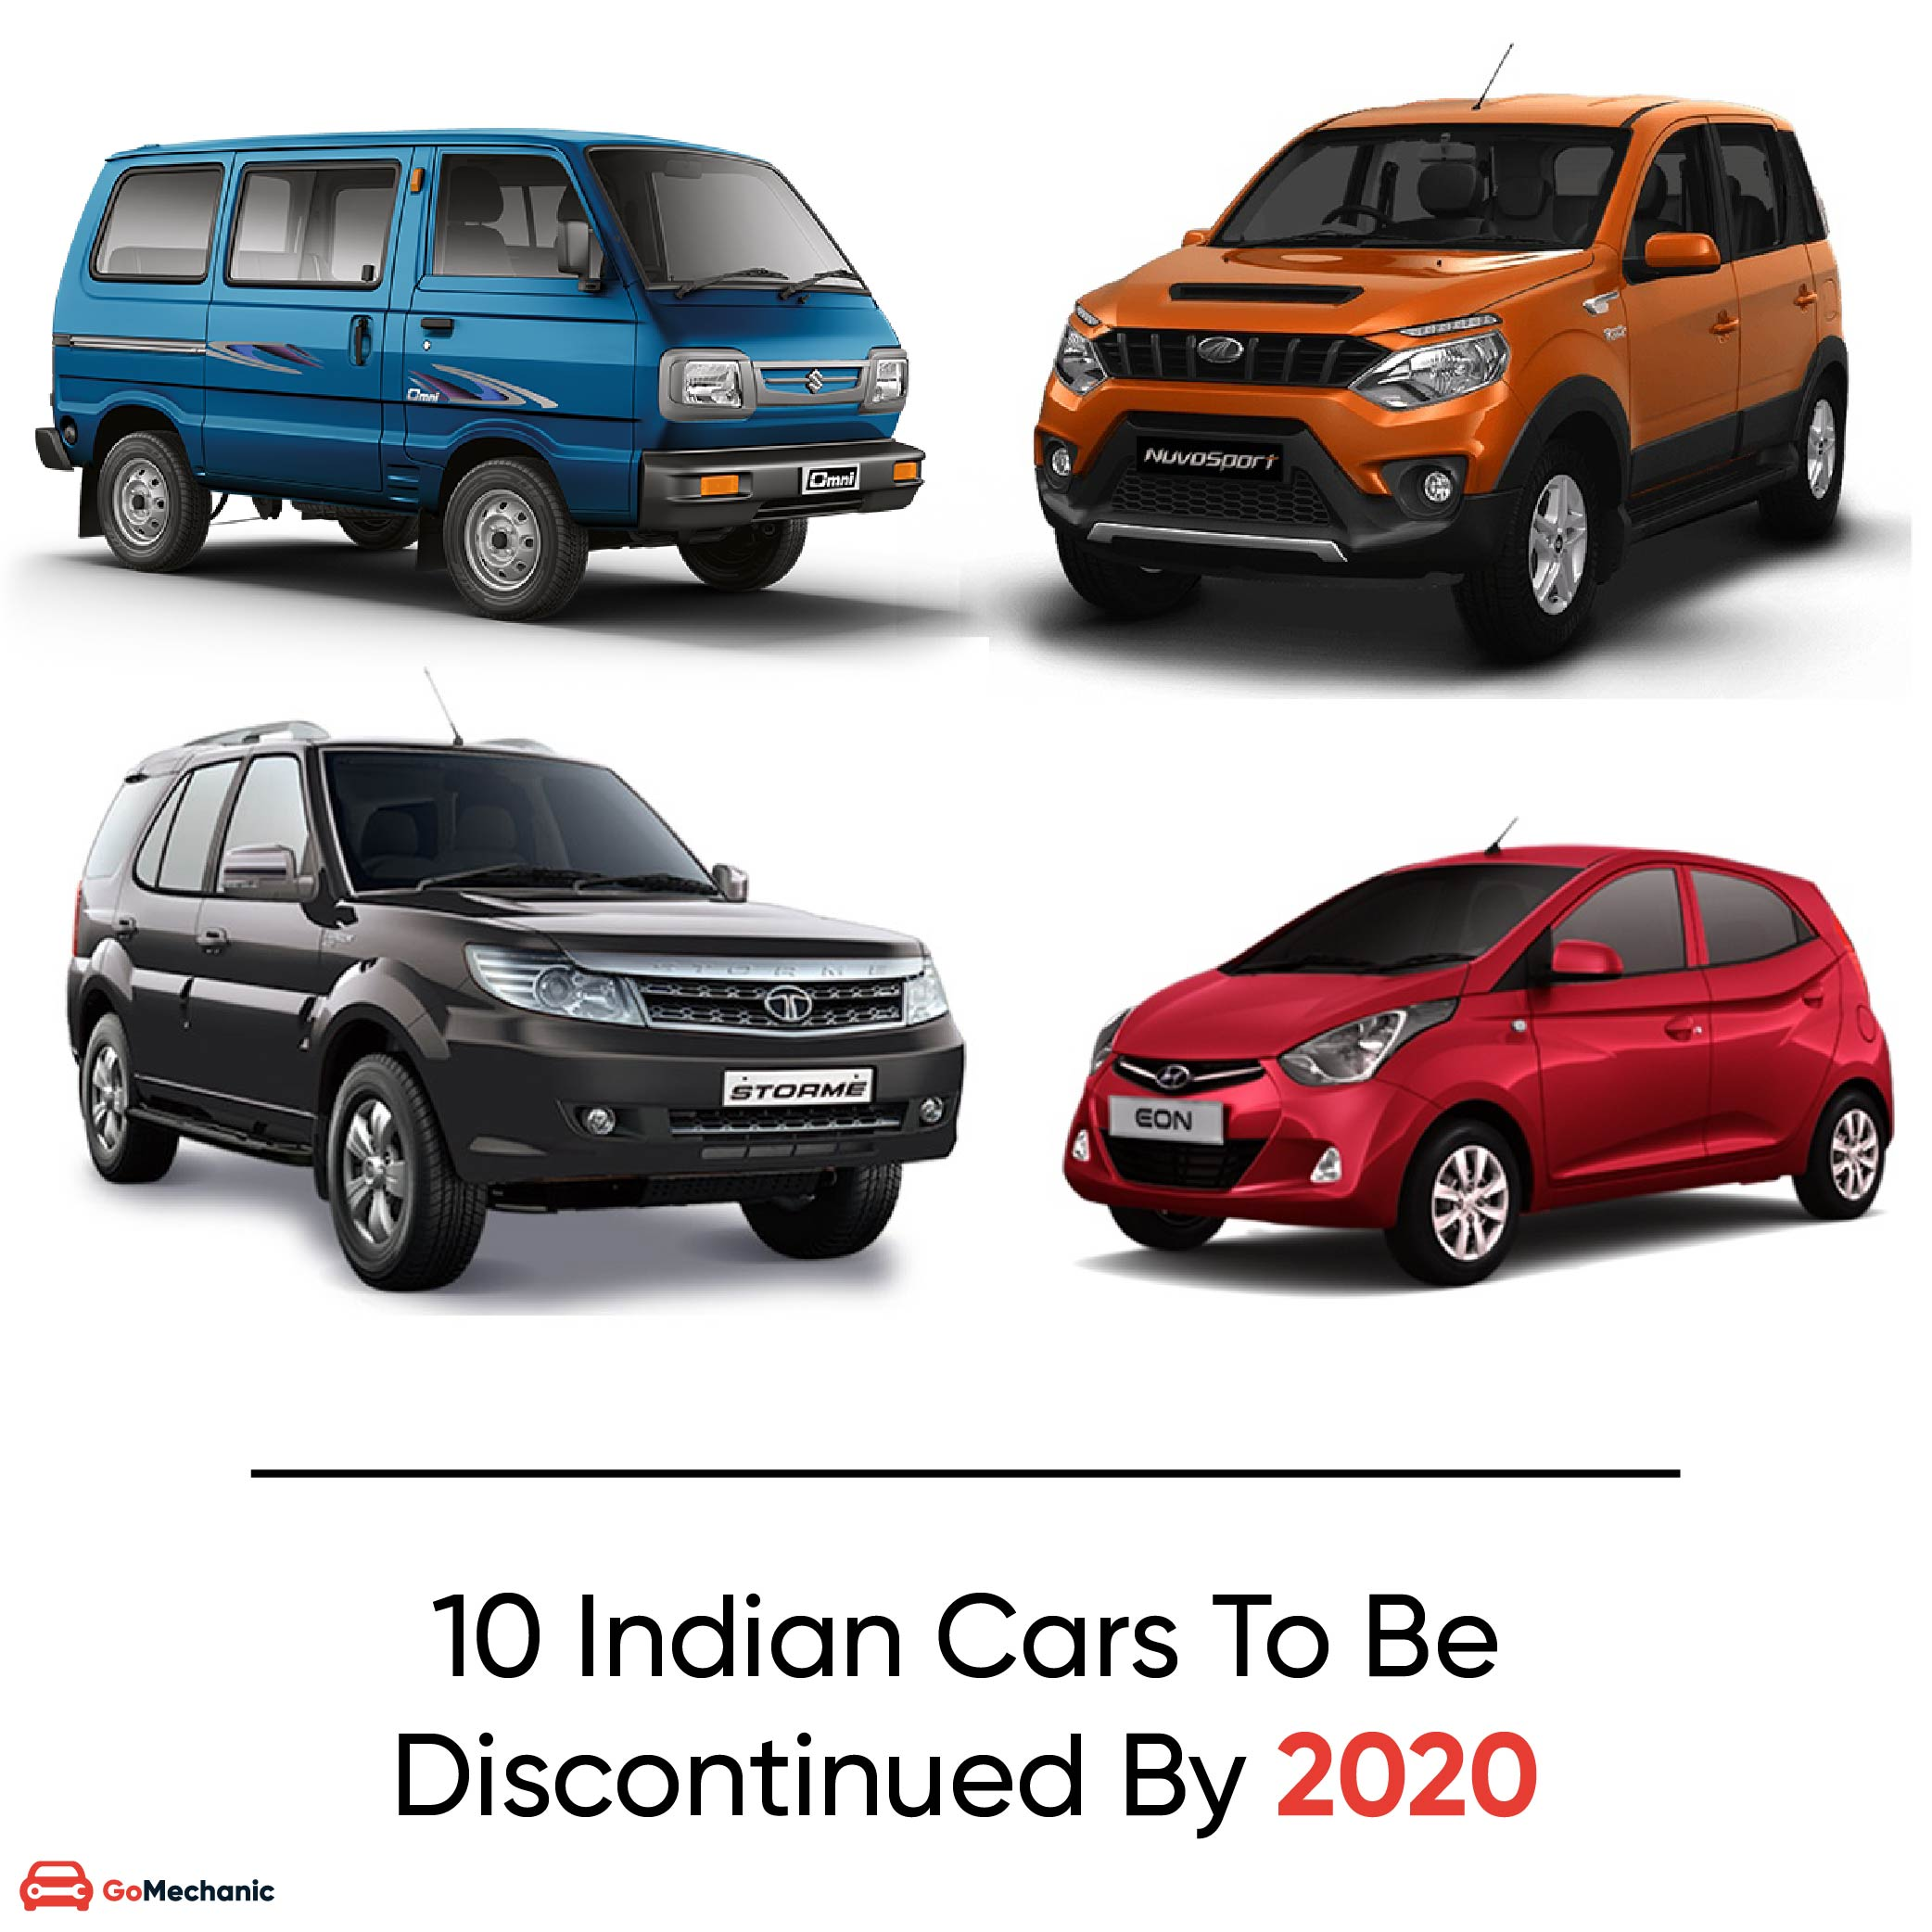 Indian Cars Discontinued By 2020